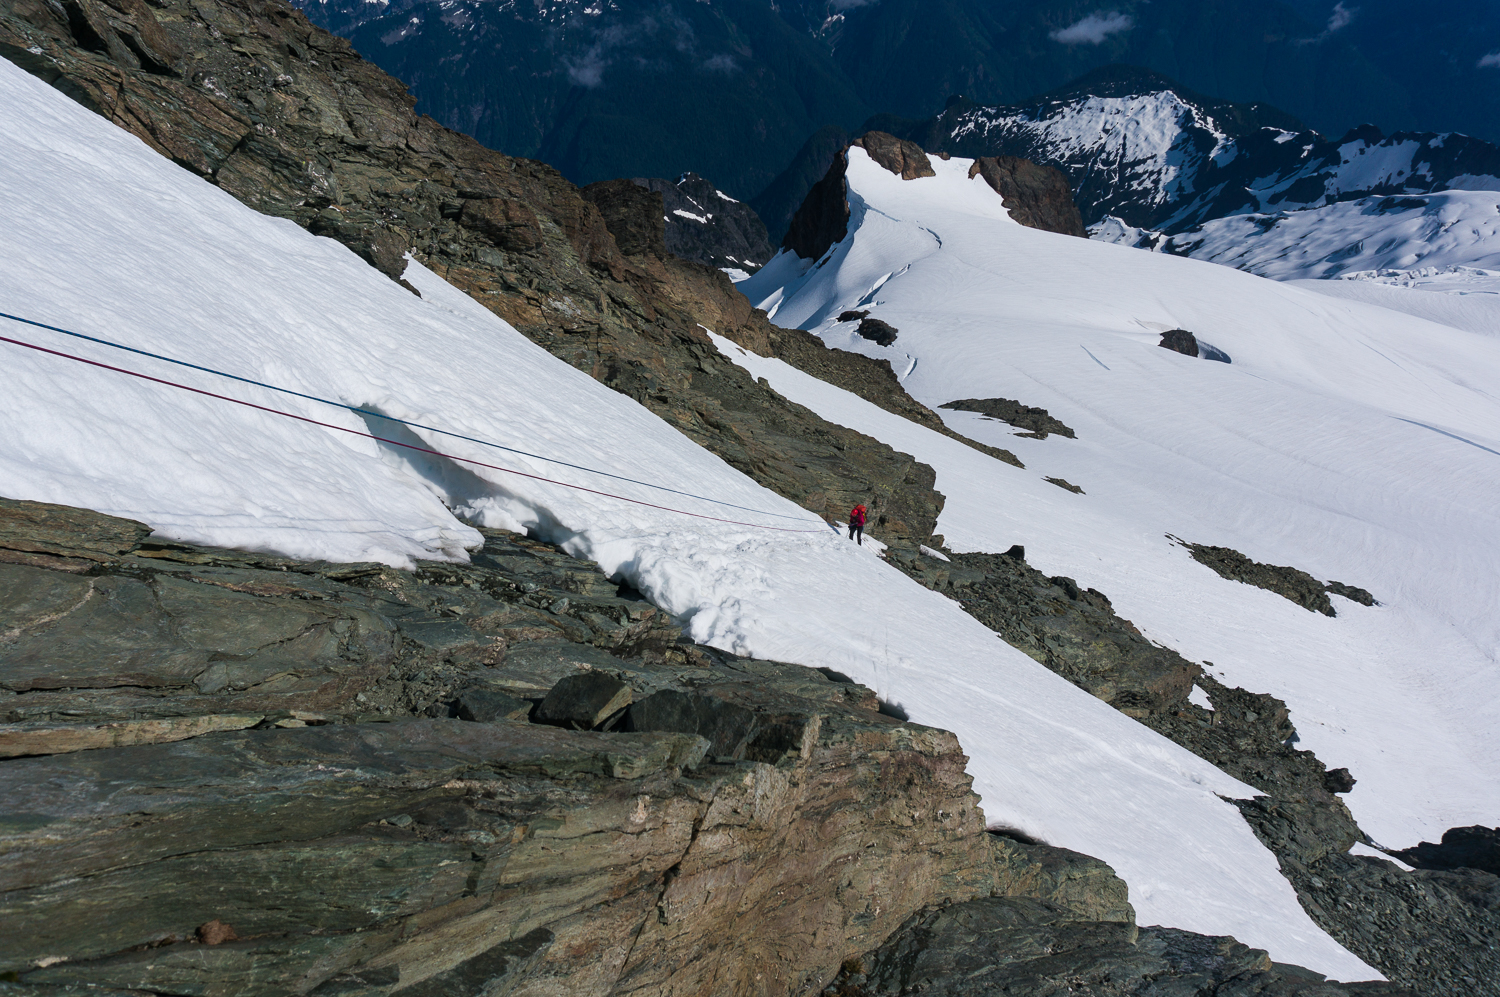 Mount Shuksan, WA, Summit Pyramid, Self-belay